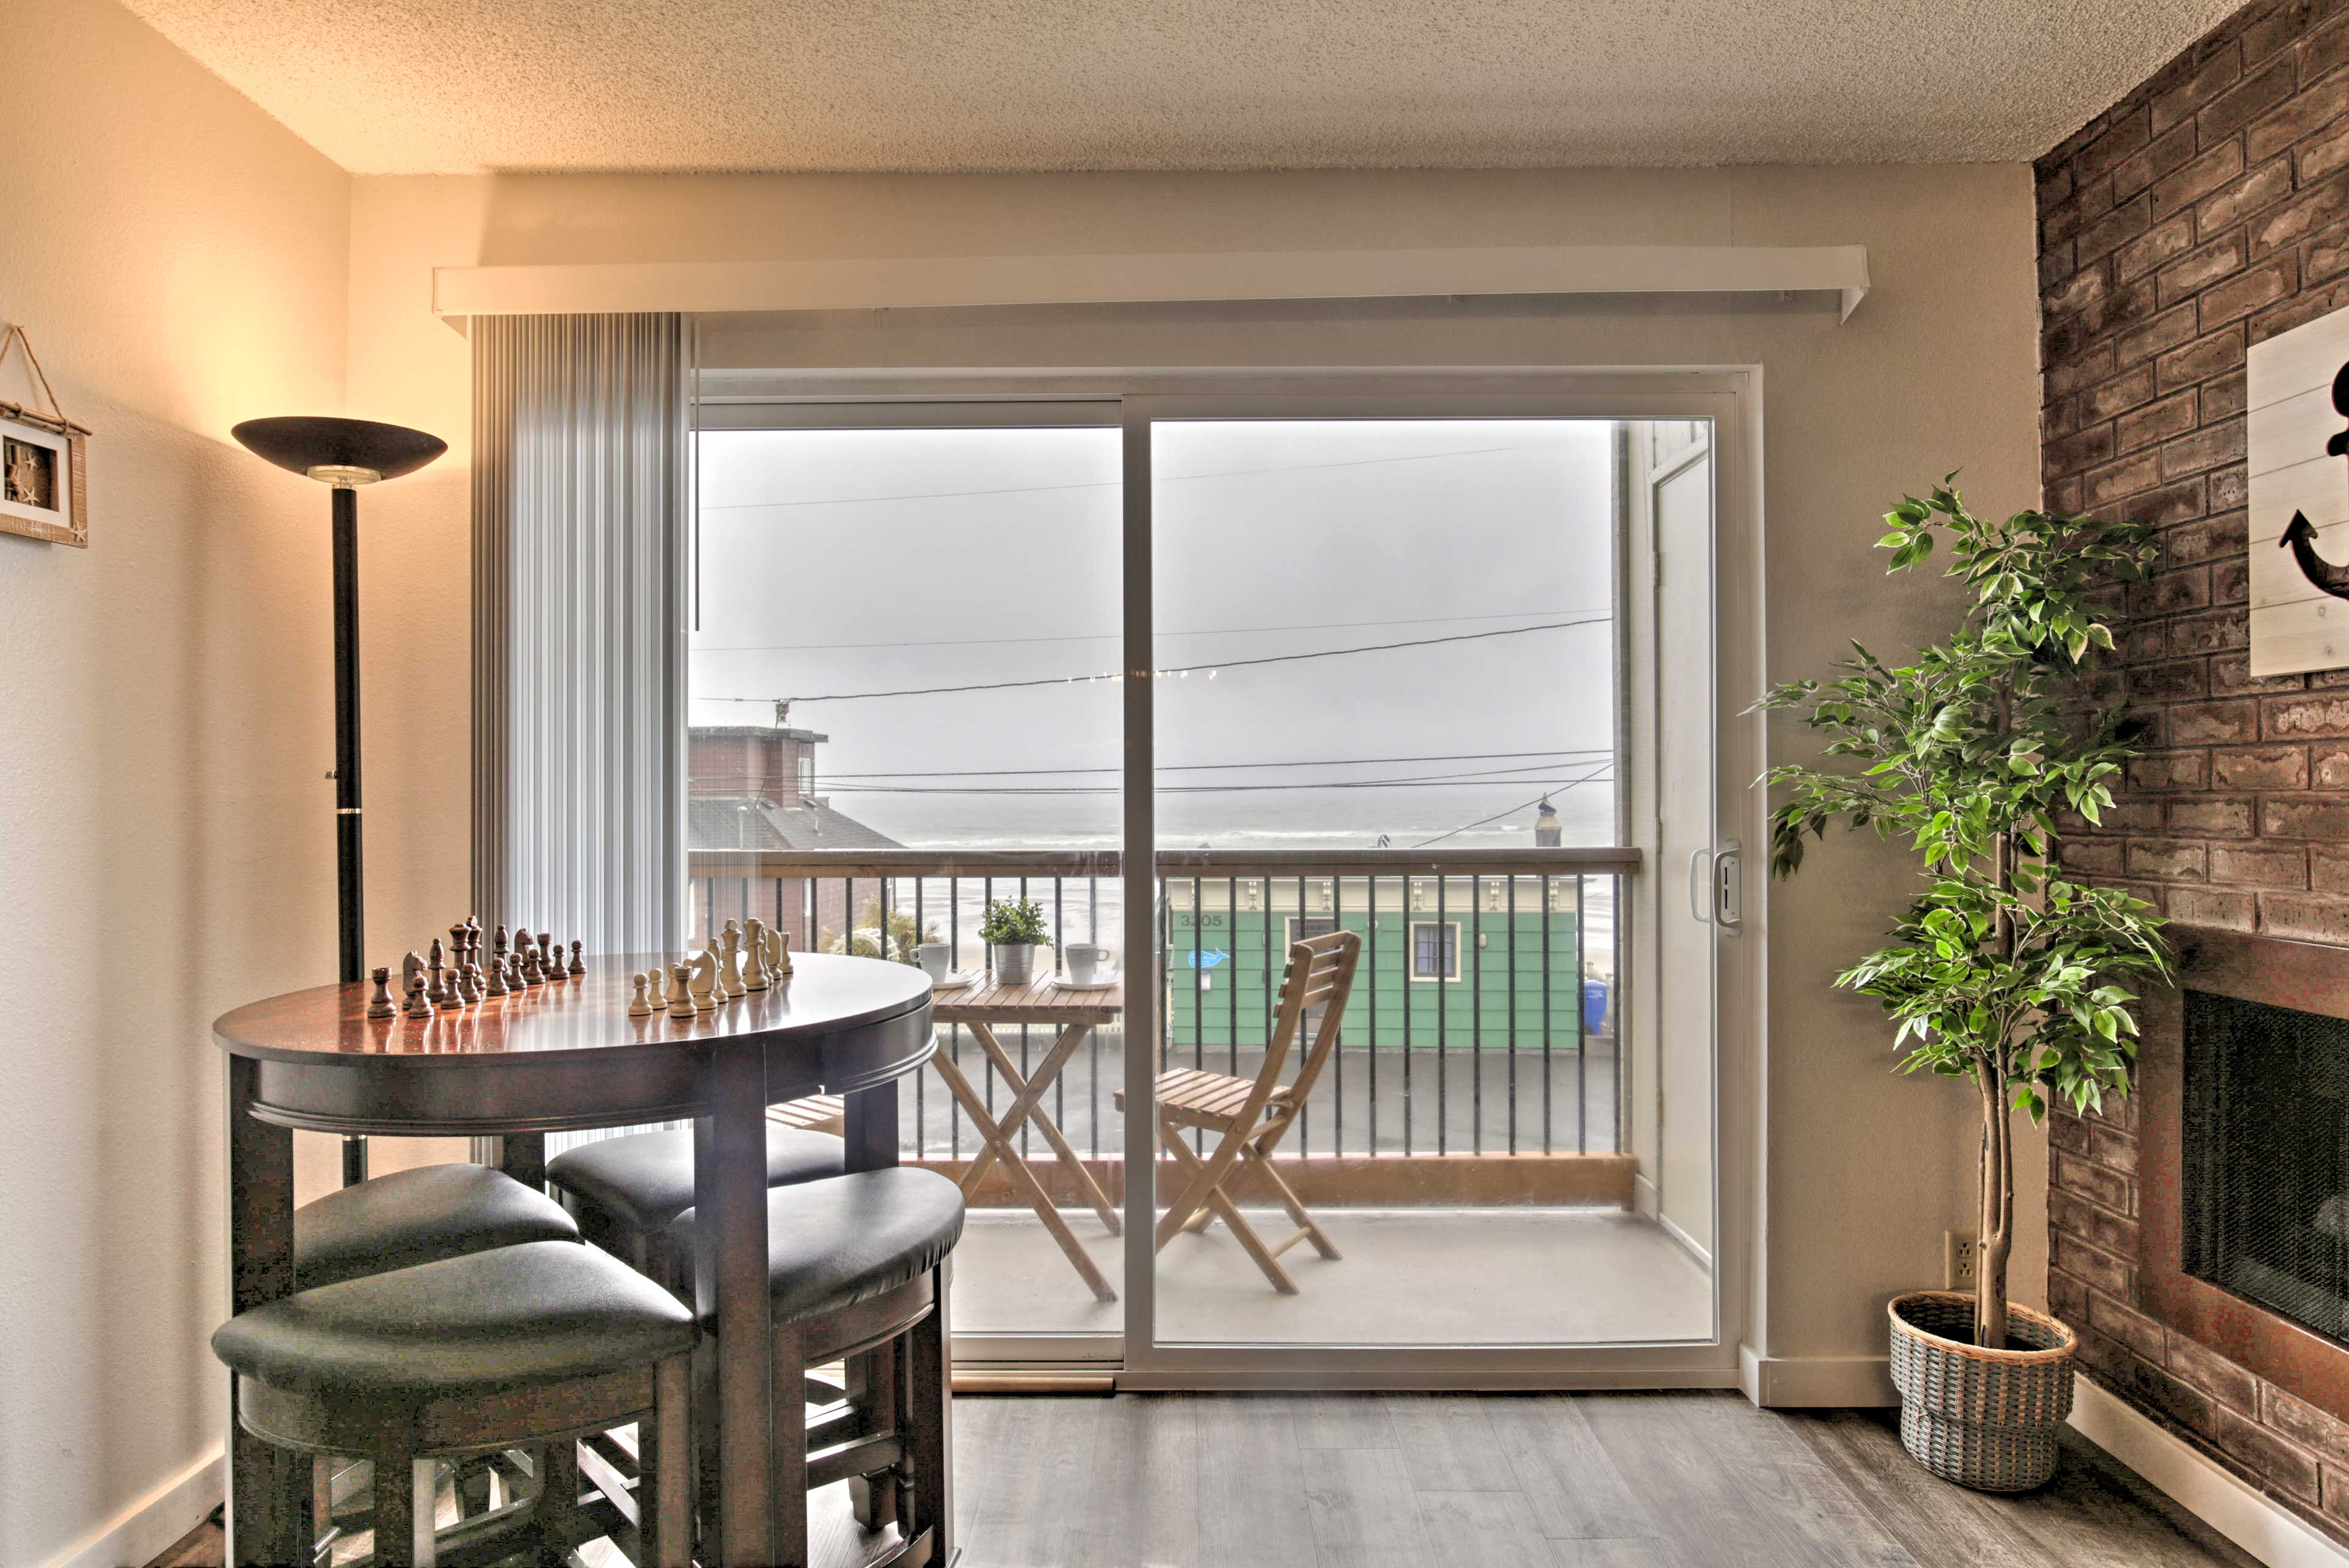 Enjoy meals or games of chess at this ocean-side table for 4.